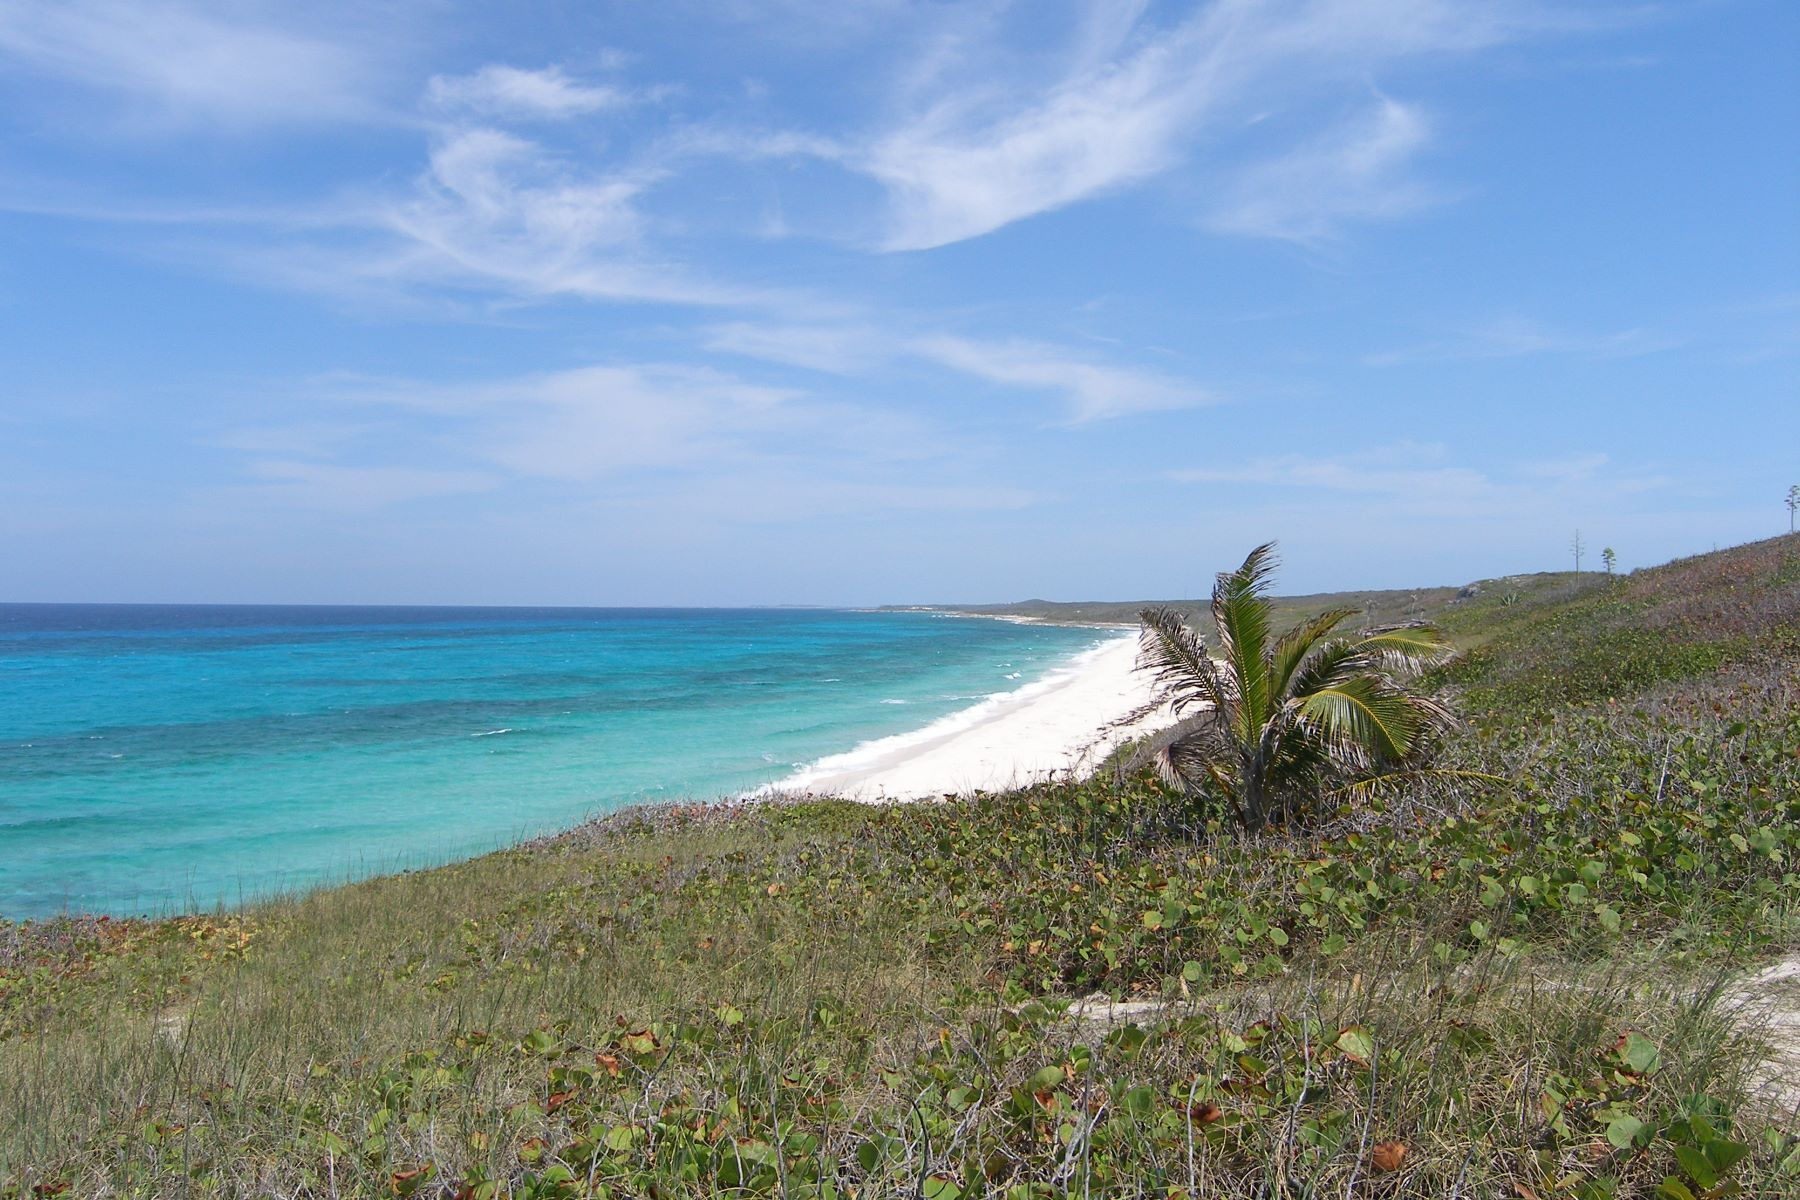 Land for Sale at Lots 13,14,& 15, Block 79, Section J Gregory Town, Eleuthera Bahamas